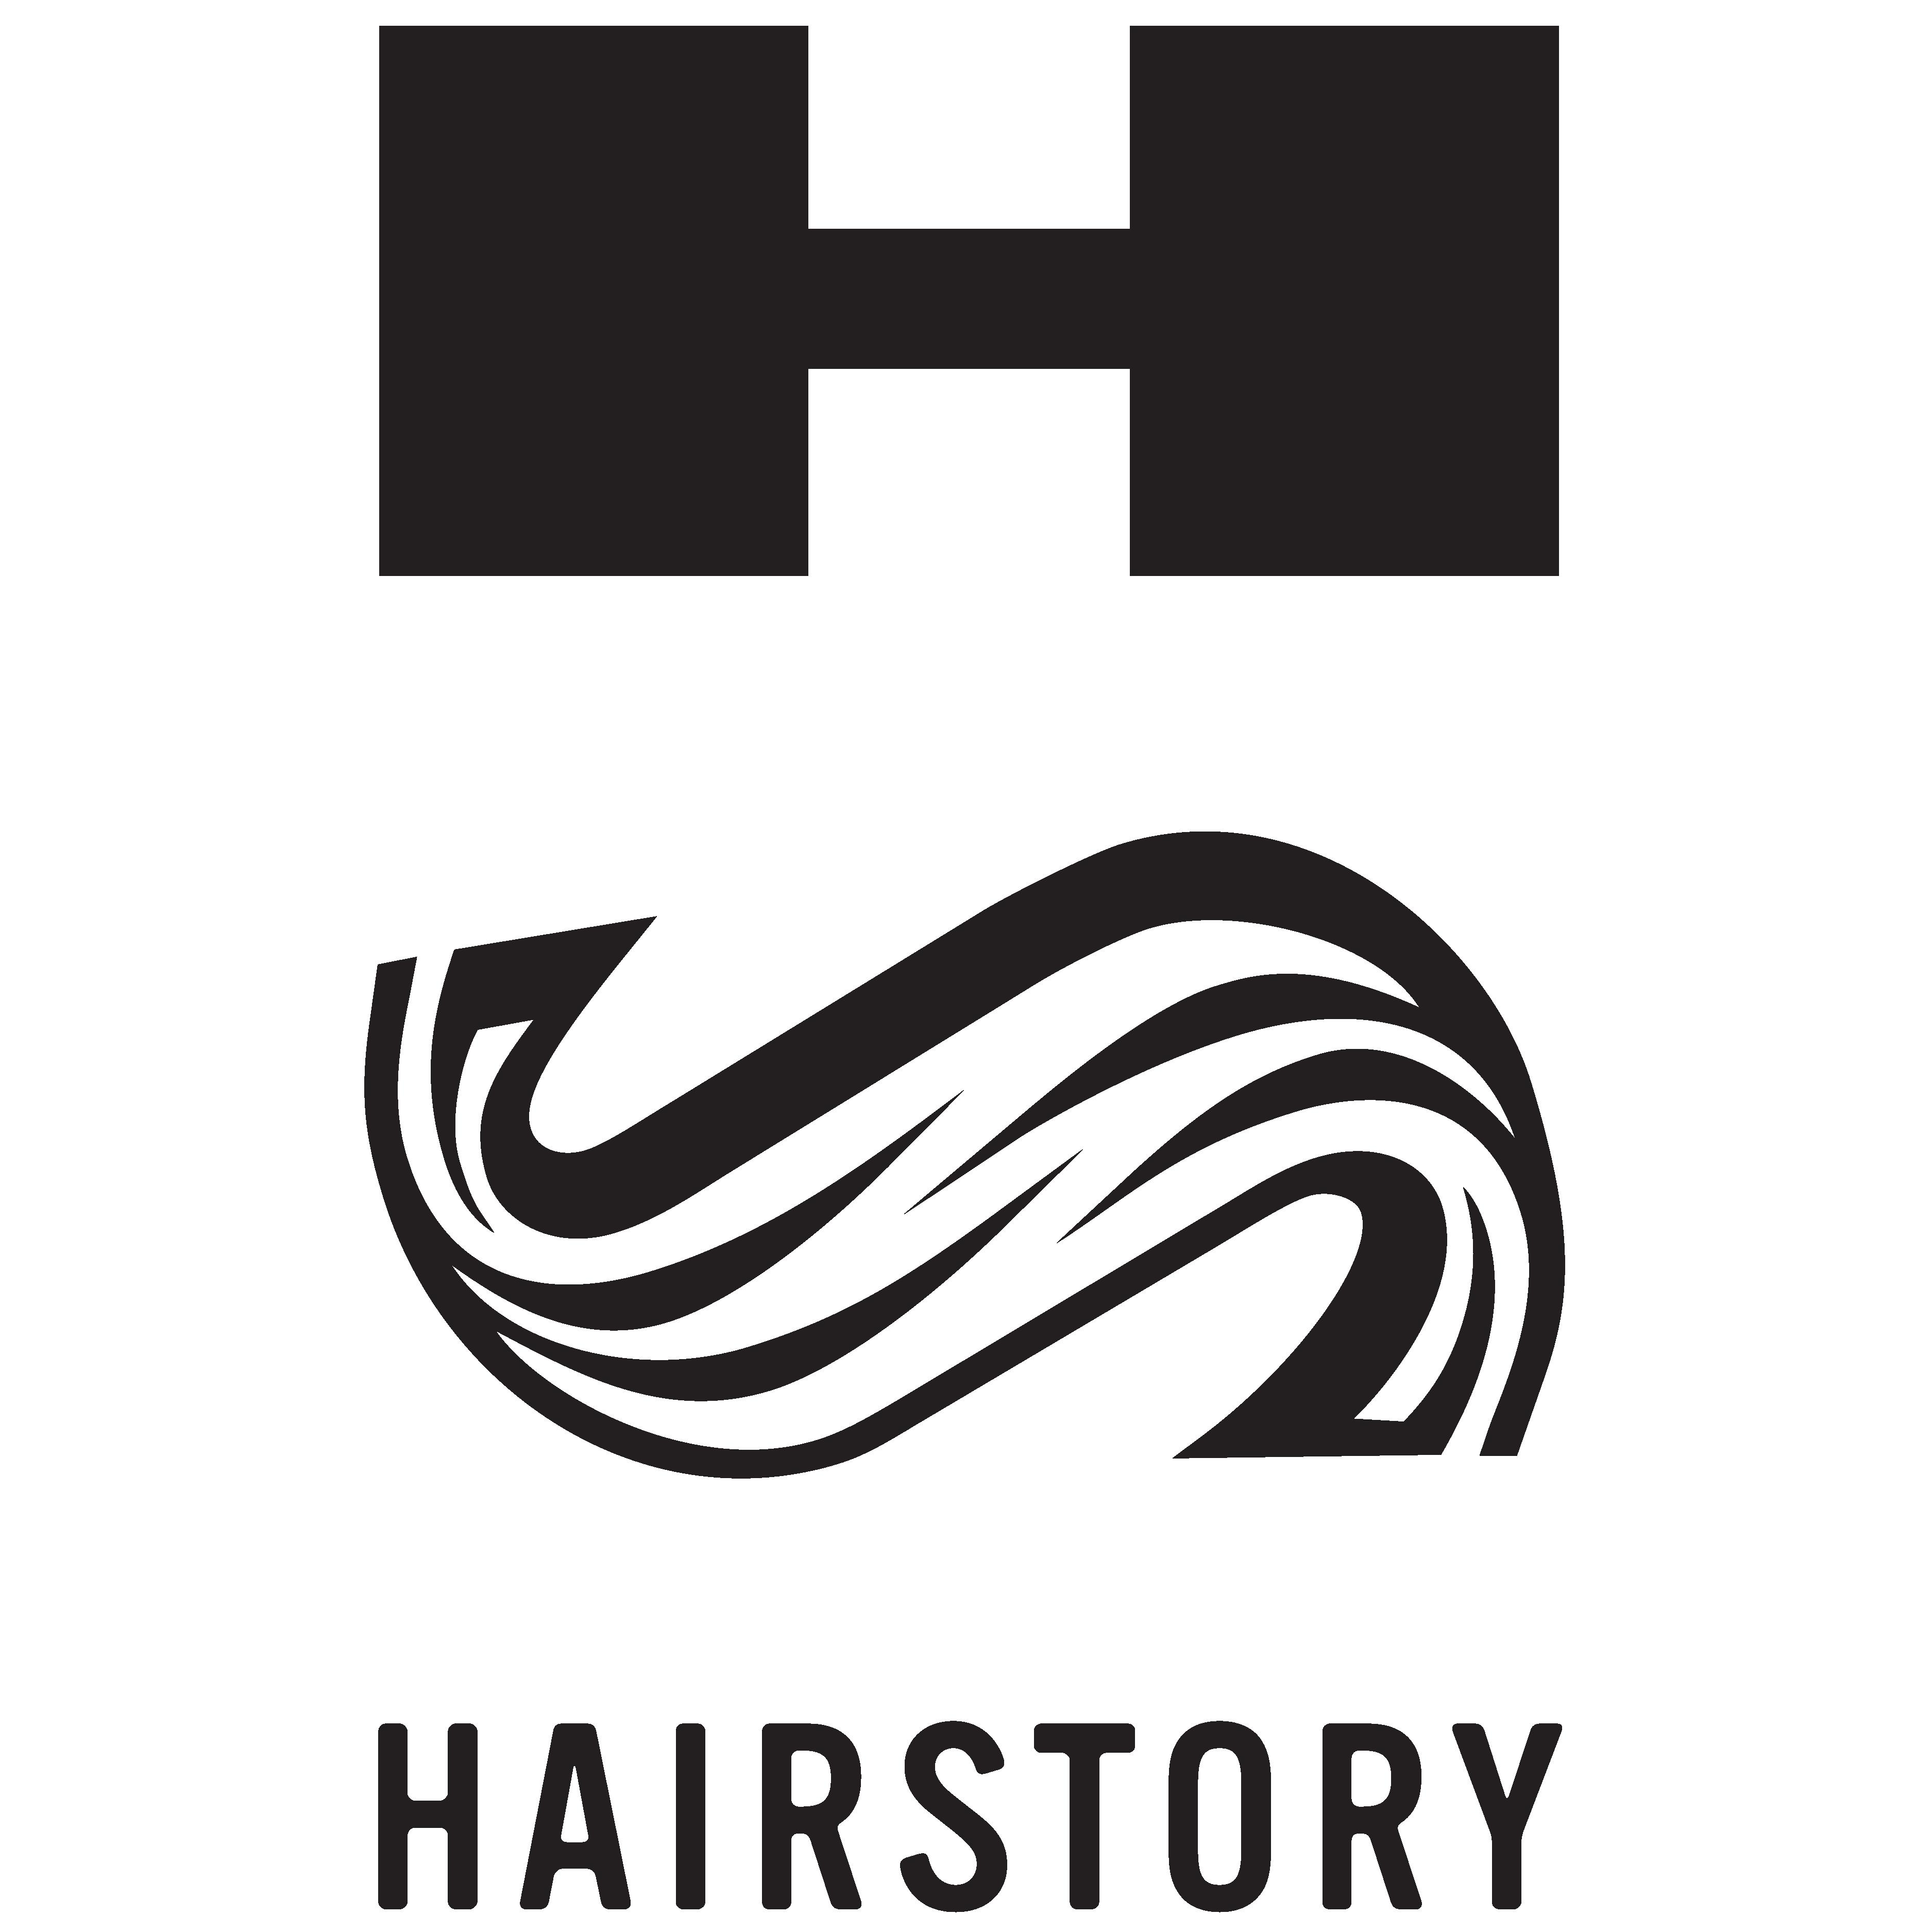 Hairstory - New Wash logo